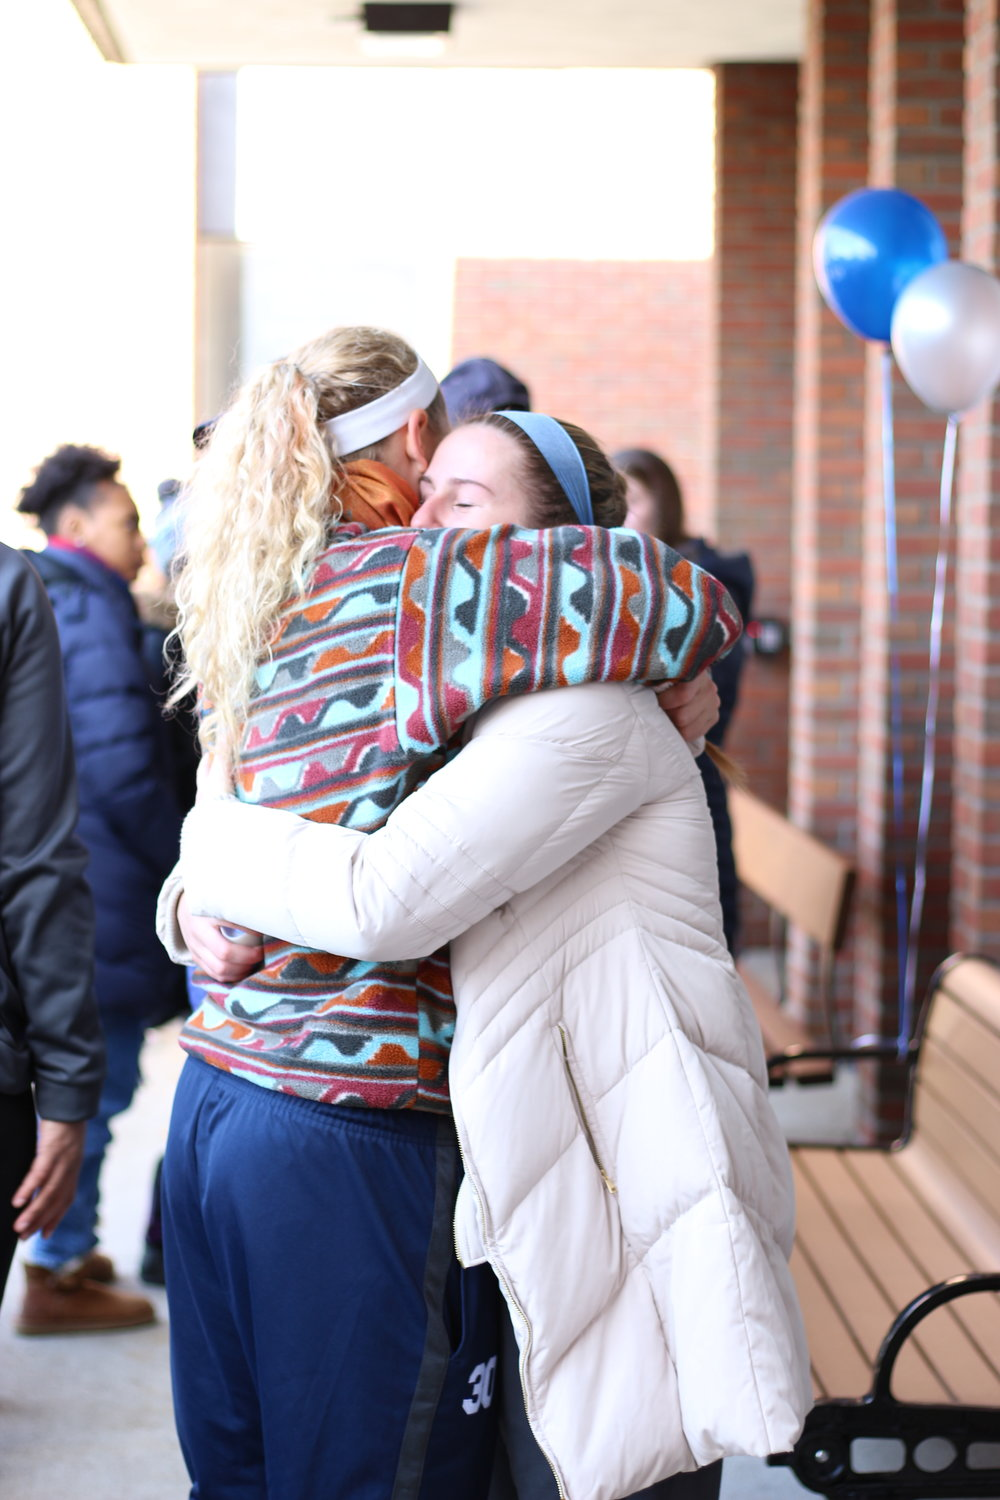 Friends, teammates and family of Savannah Williams gathered in front of Onondaga Hall on Saturday Nov. 11 to pay their respects and see the bench inscribed with her name (pictured top). Savannah Williams passed away after the fall of 2016, as she was travelling home for winter break. (Ellayna Fredericks/assoc. photo editor)